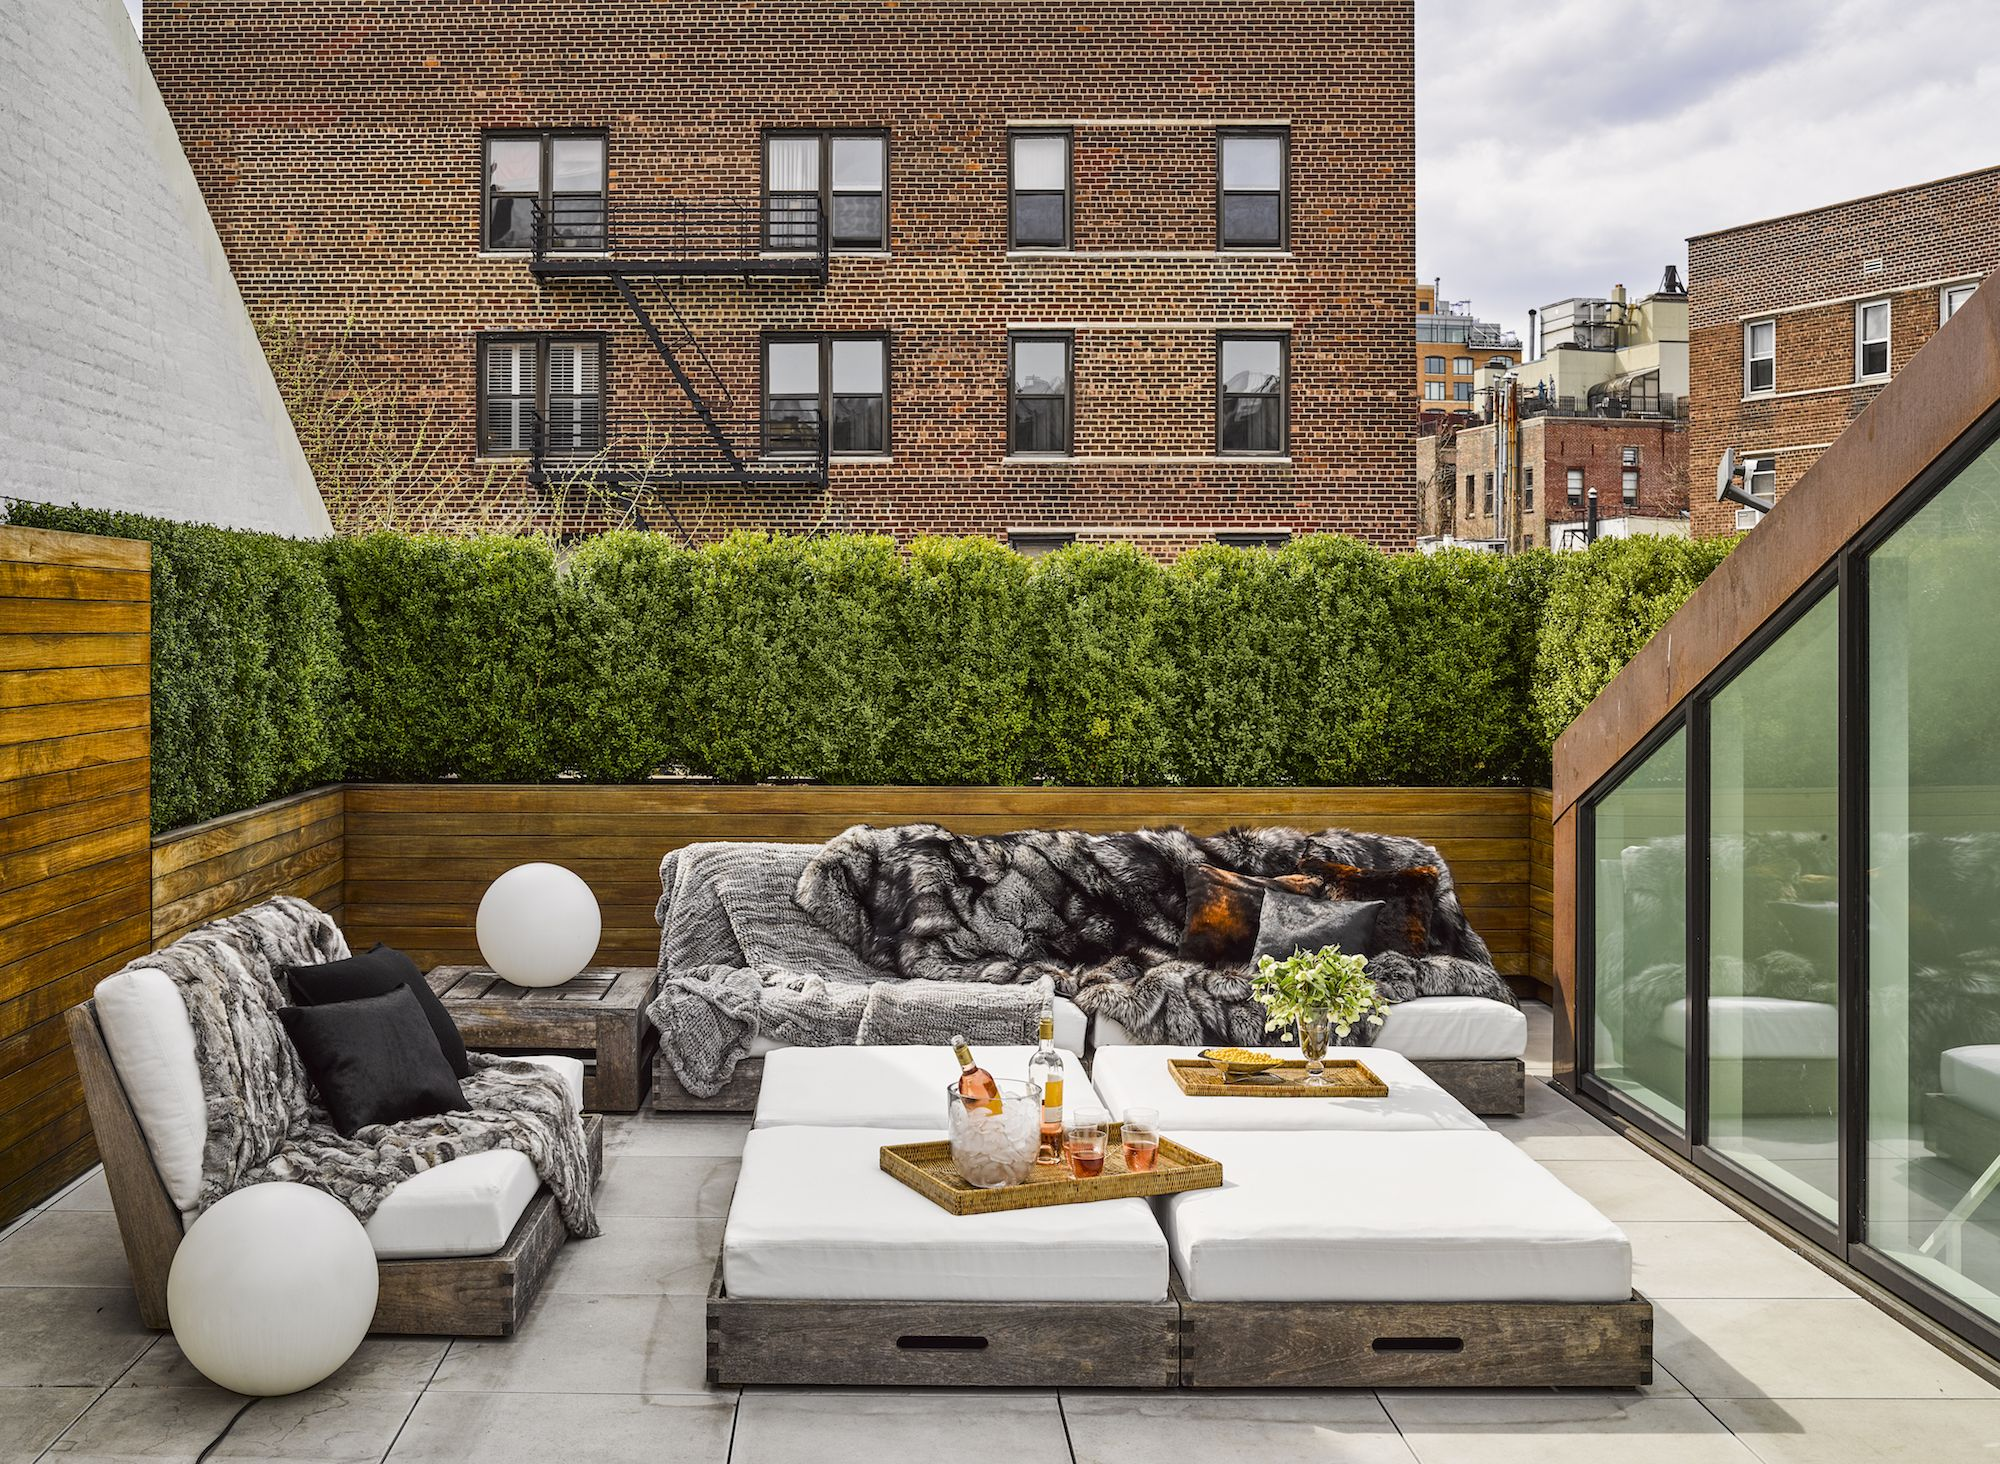 Trends · 40 Best Small Patio Ideas ...